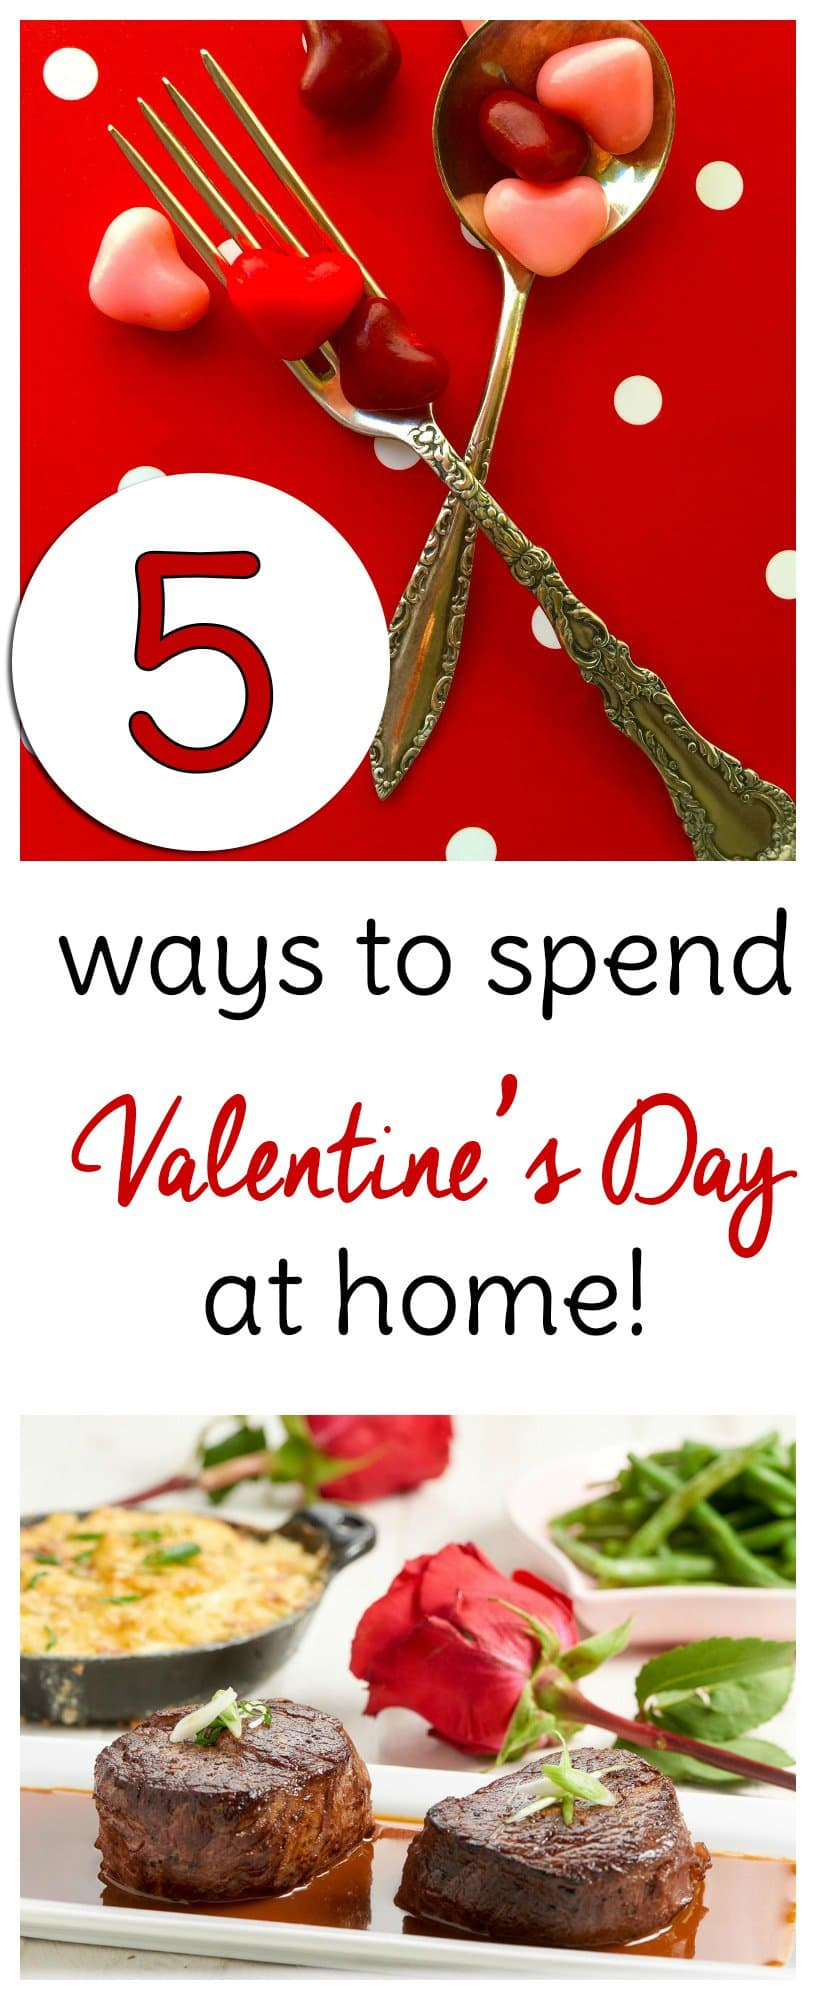 Valentine's Day is coming up but if you can't find a babysitter, you may need to plan a Valentine's Day date at home. Try these 6 date night ideas to make sure you have a romantic evening even if you never leave home.